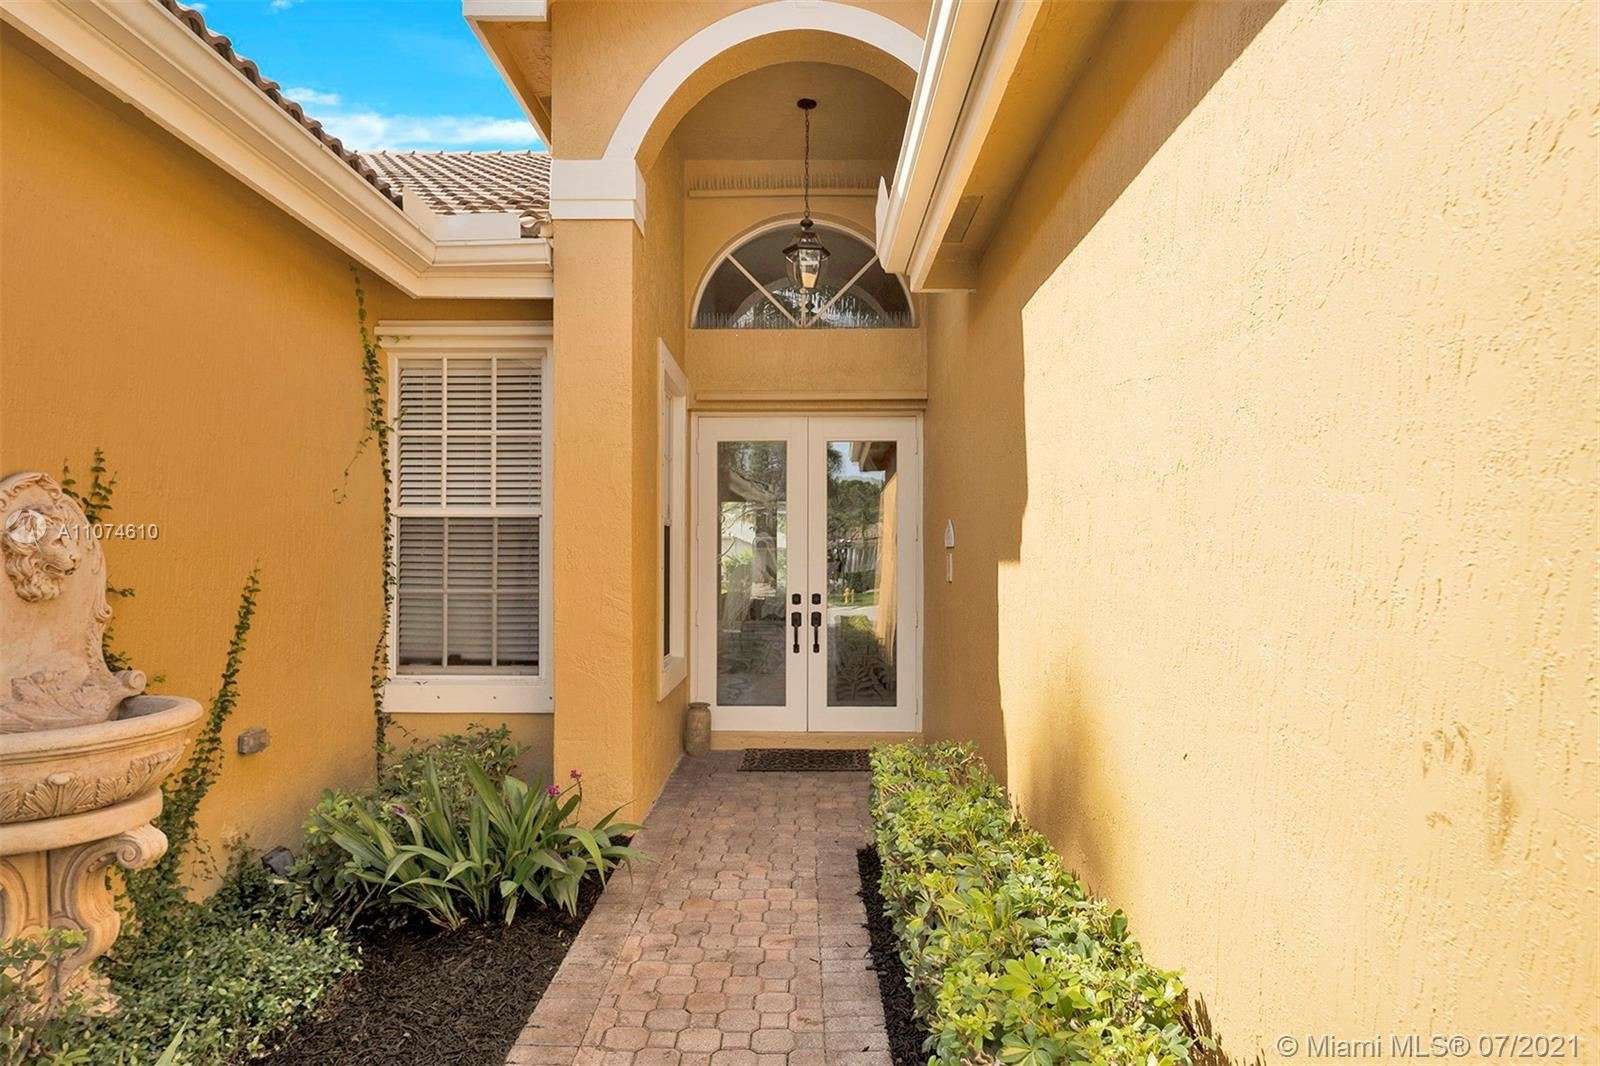 Photo of 12424 NW 62nd Ct, Coral Springs, FL 33076 (MLS # A11074610)